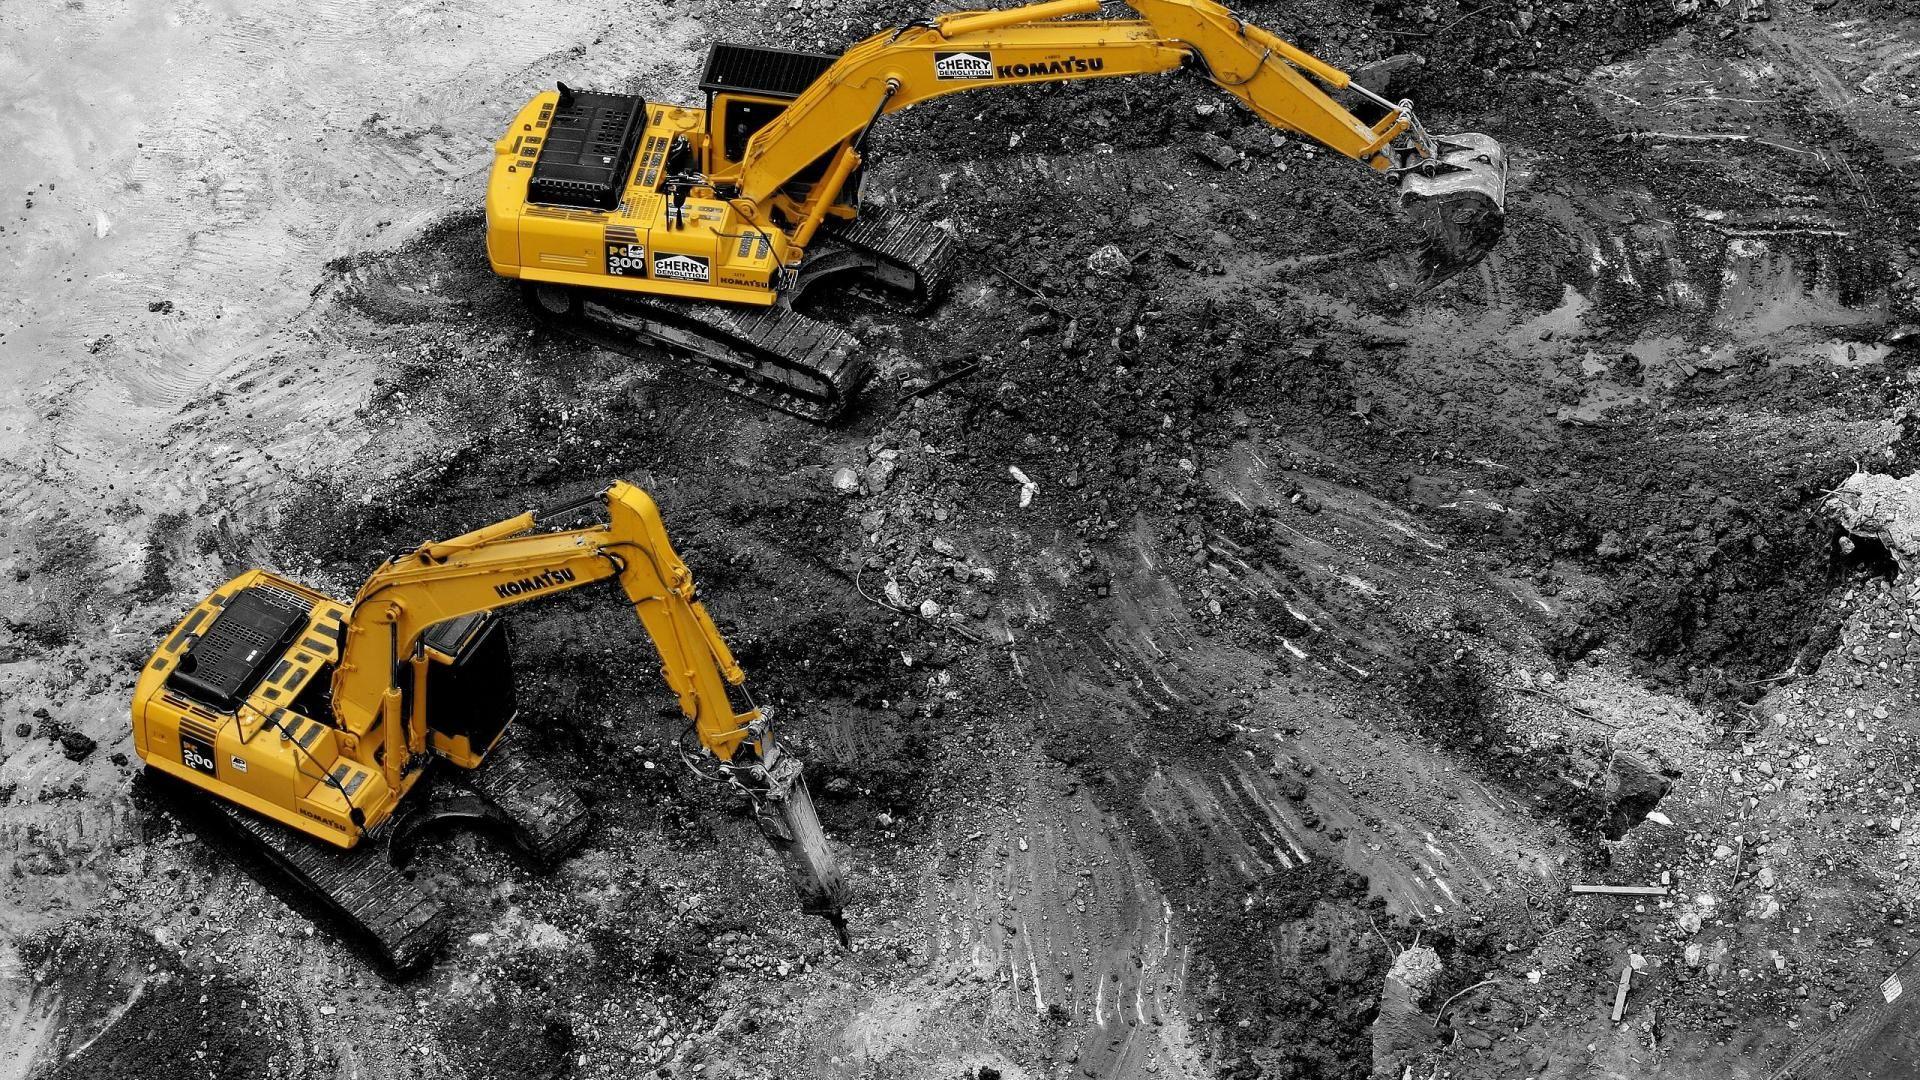 8 Excavator HD Wallpapers | Backgrounds - Wallpaper Abyss